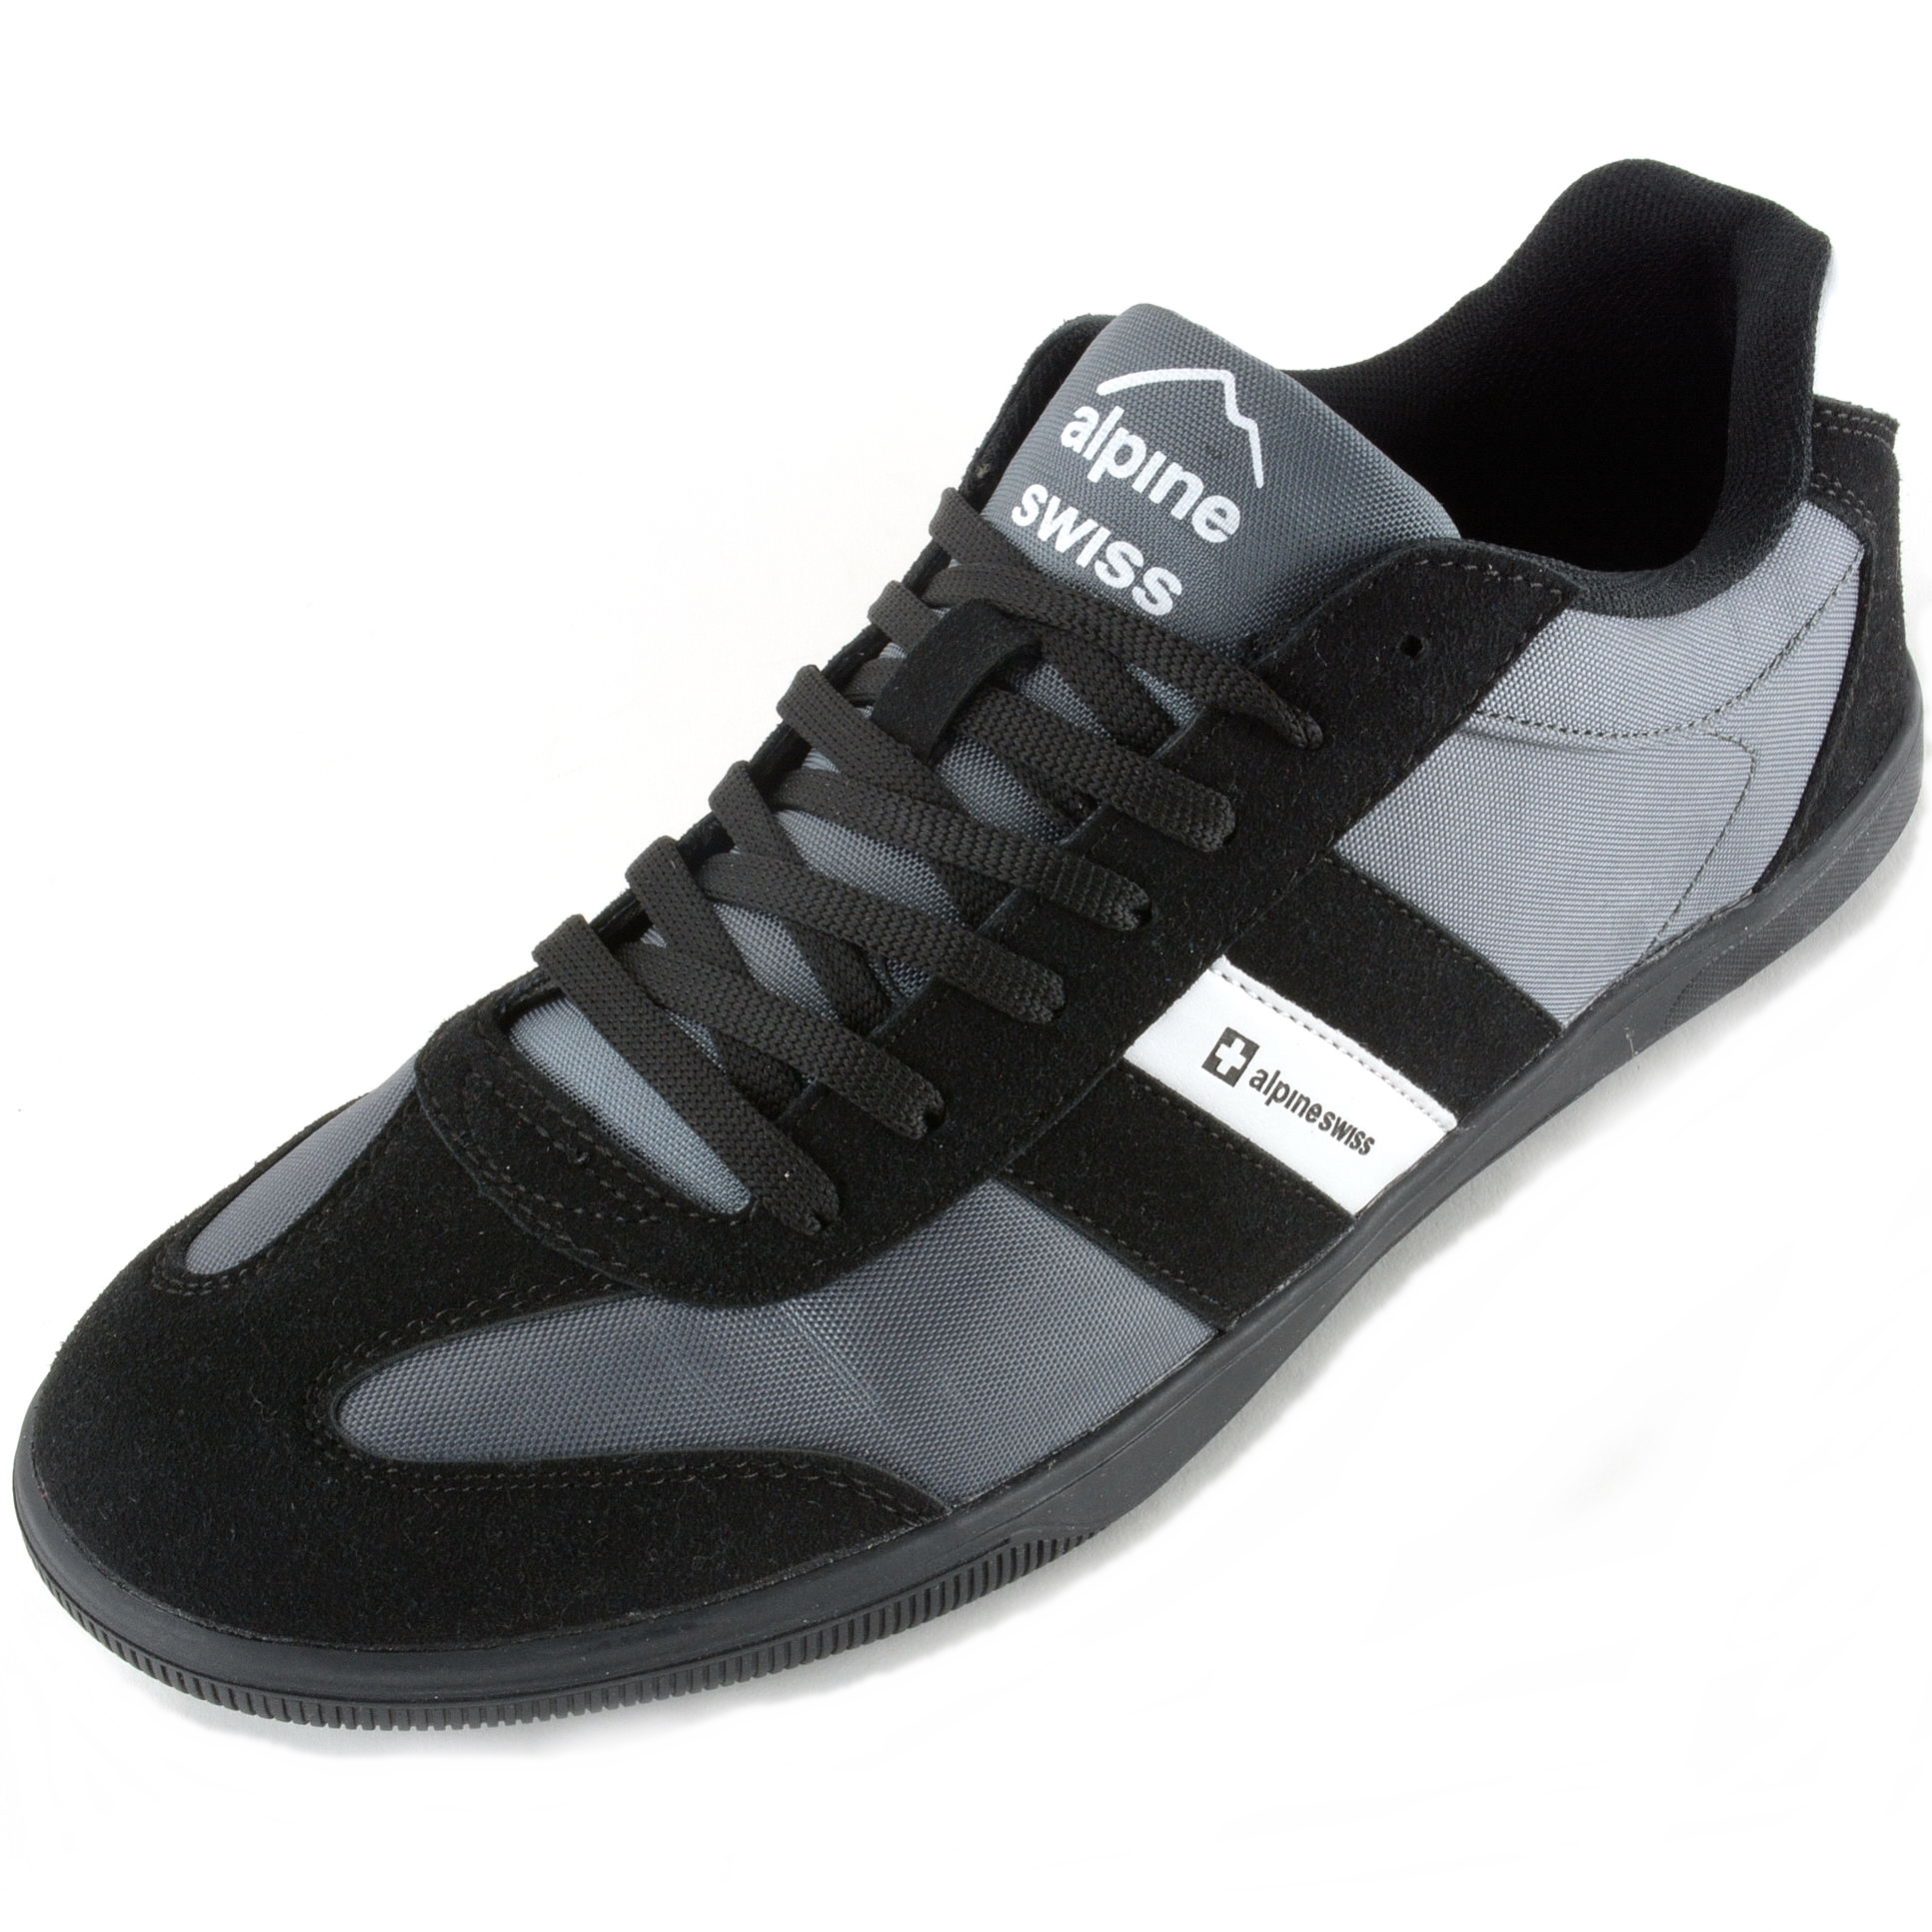 Highest Rated Shoes For Tennis